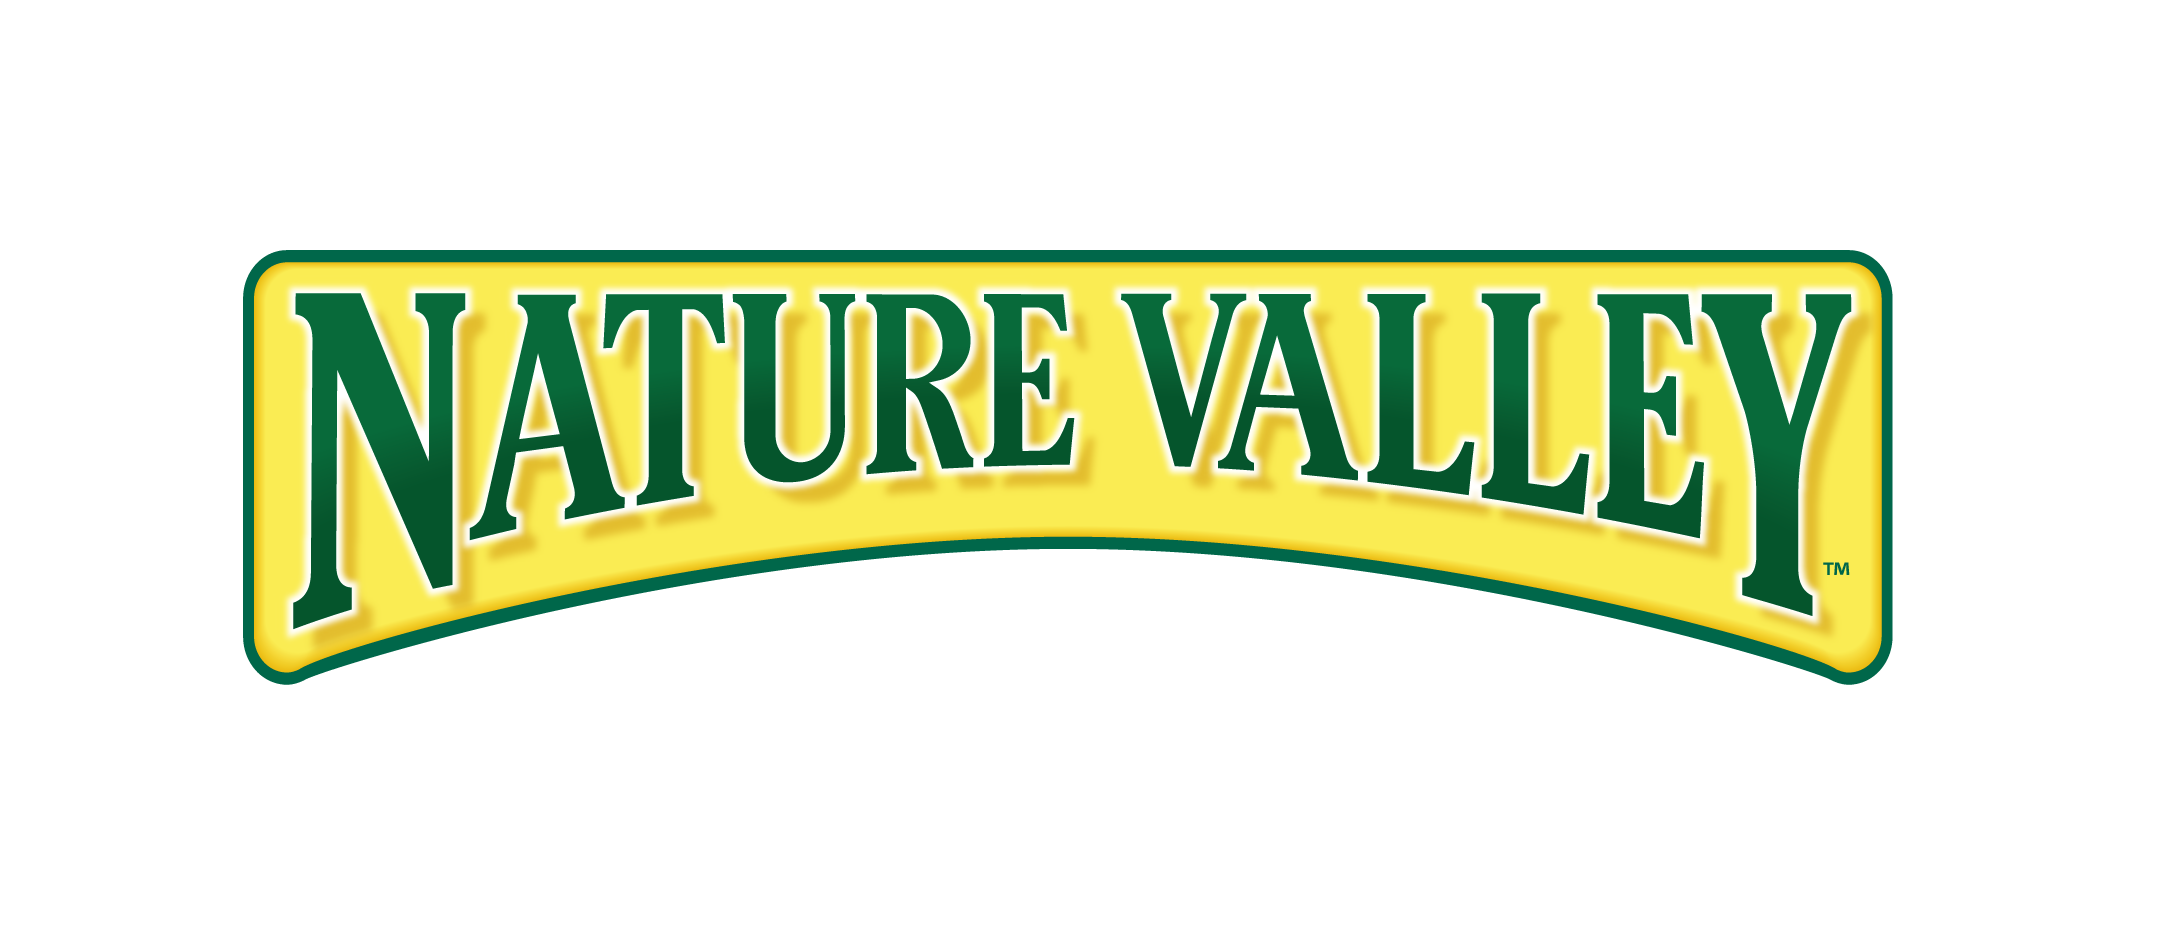 nature valley logo png